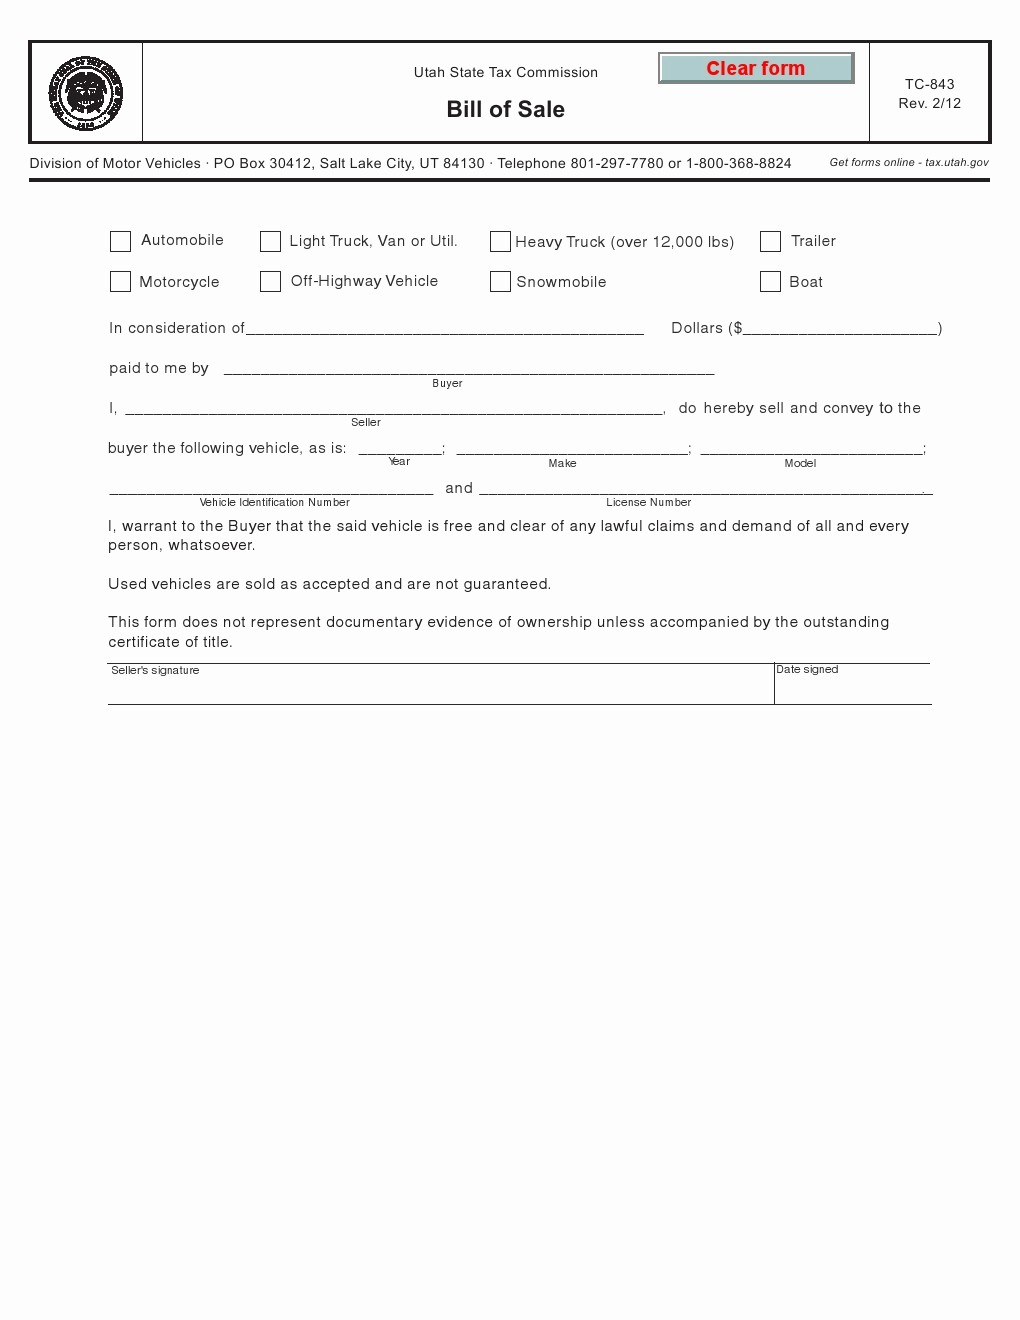 Bill Of Sale Print Off New Free Utah Vehicle Bill Of Sale form Tc 843 Download Pdf